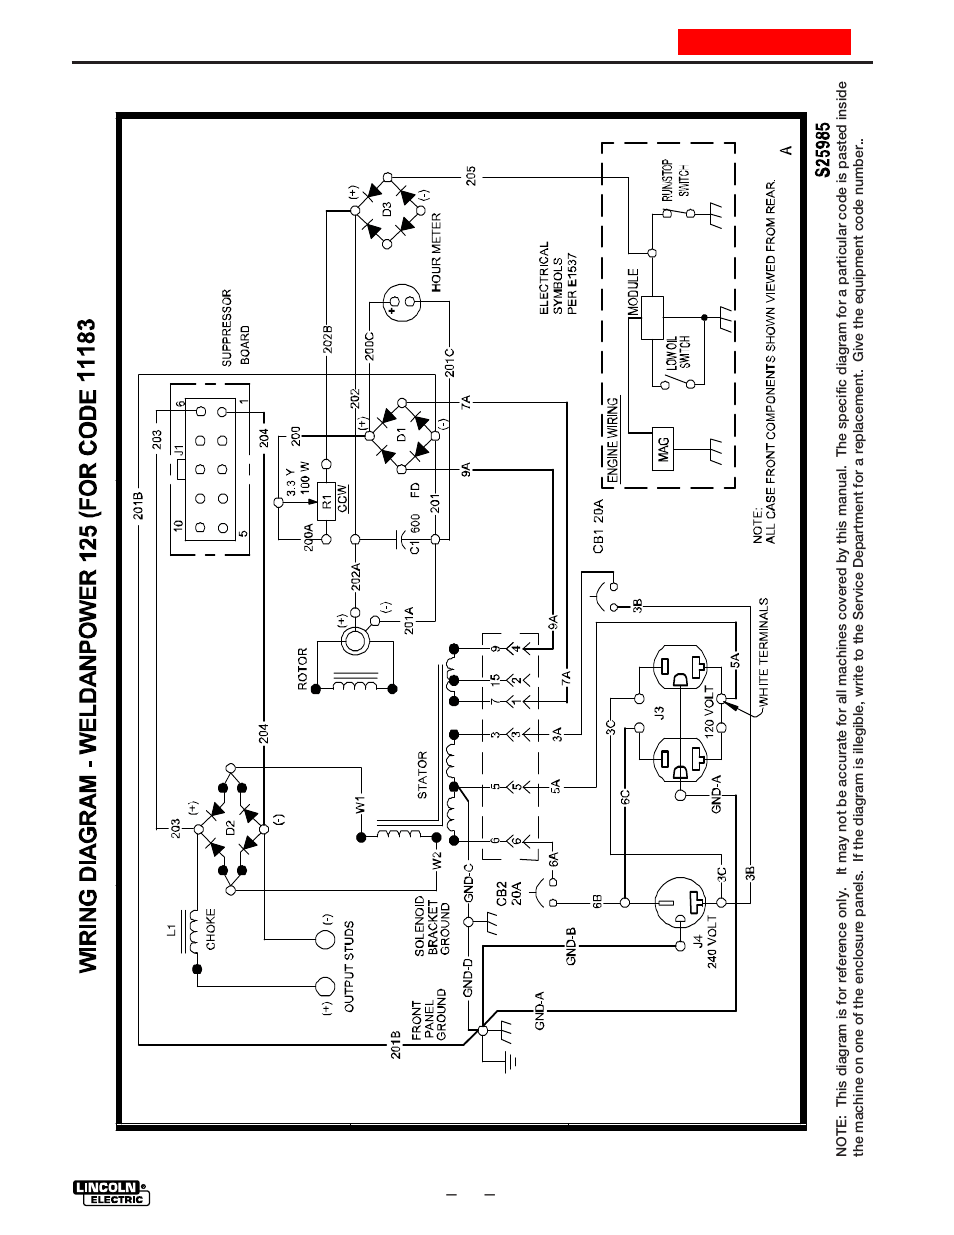 hight resolution of wiring diagram lincoln electric weldanpower 125 im530 c user manual page 33 40